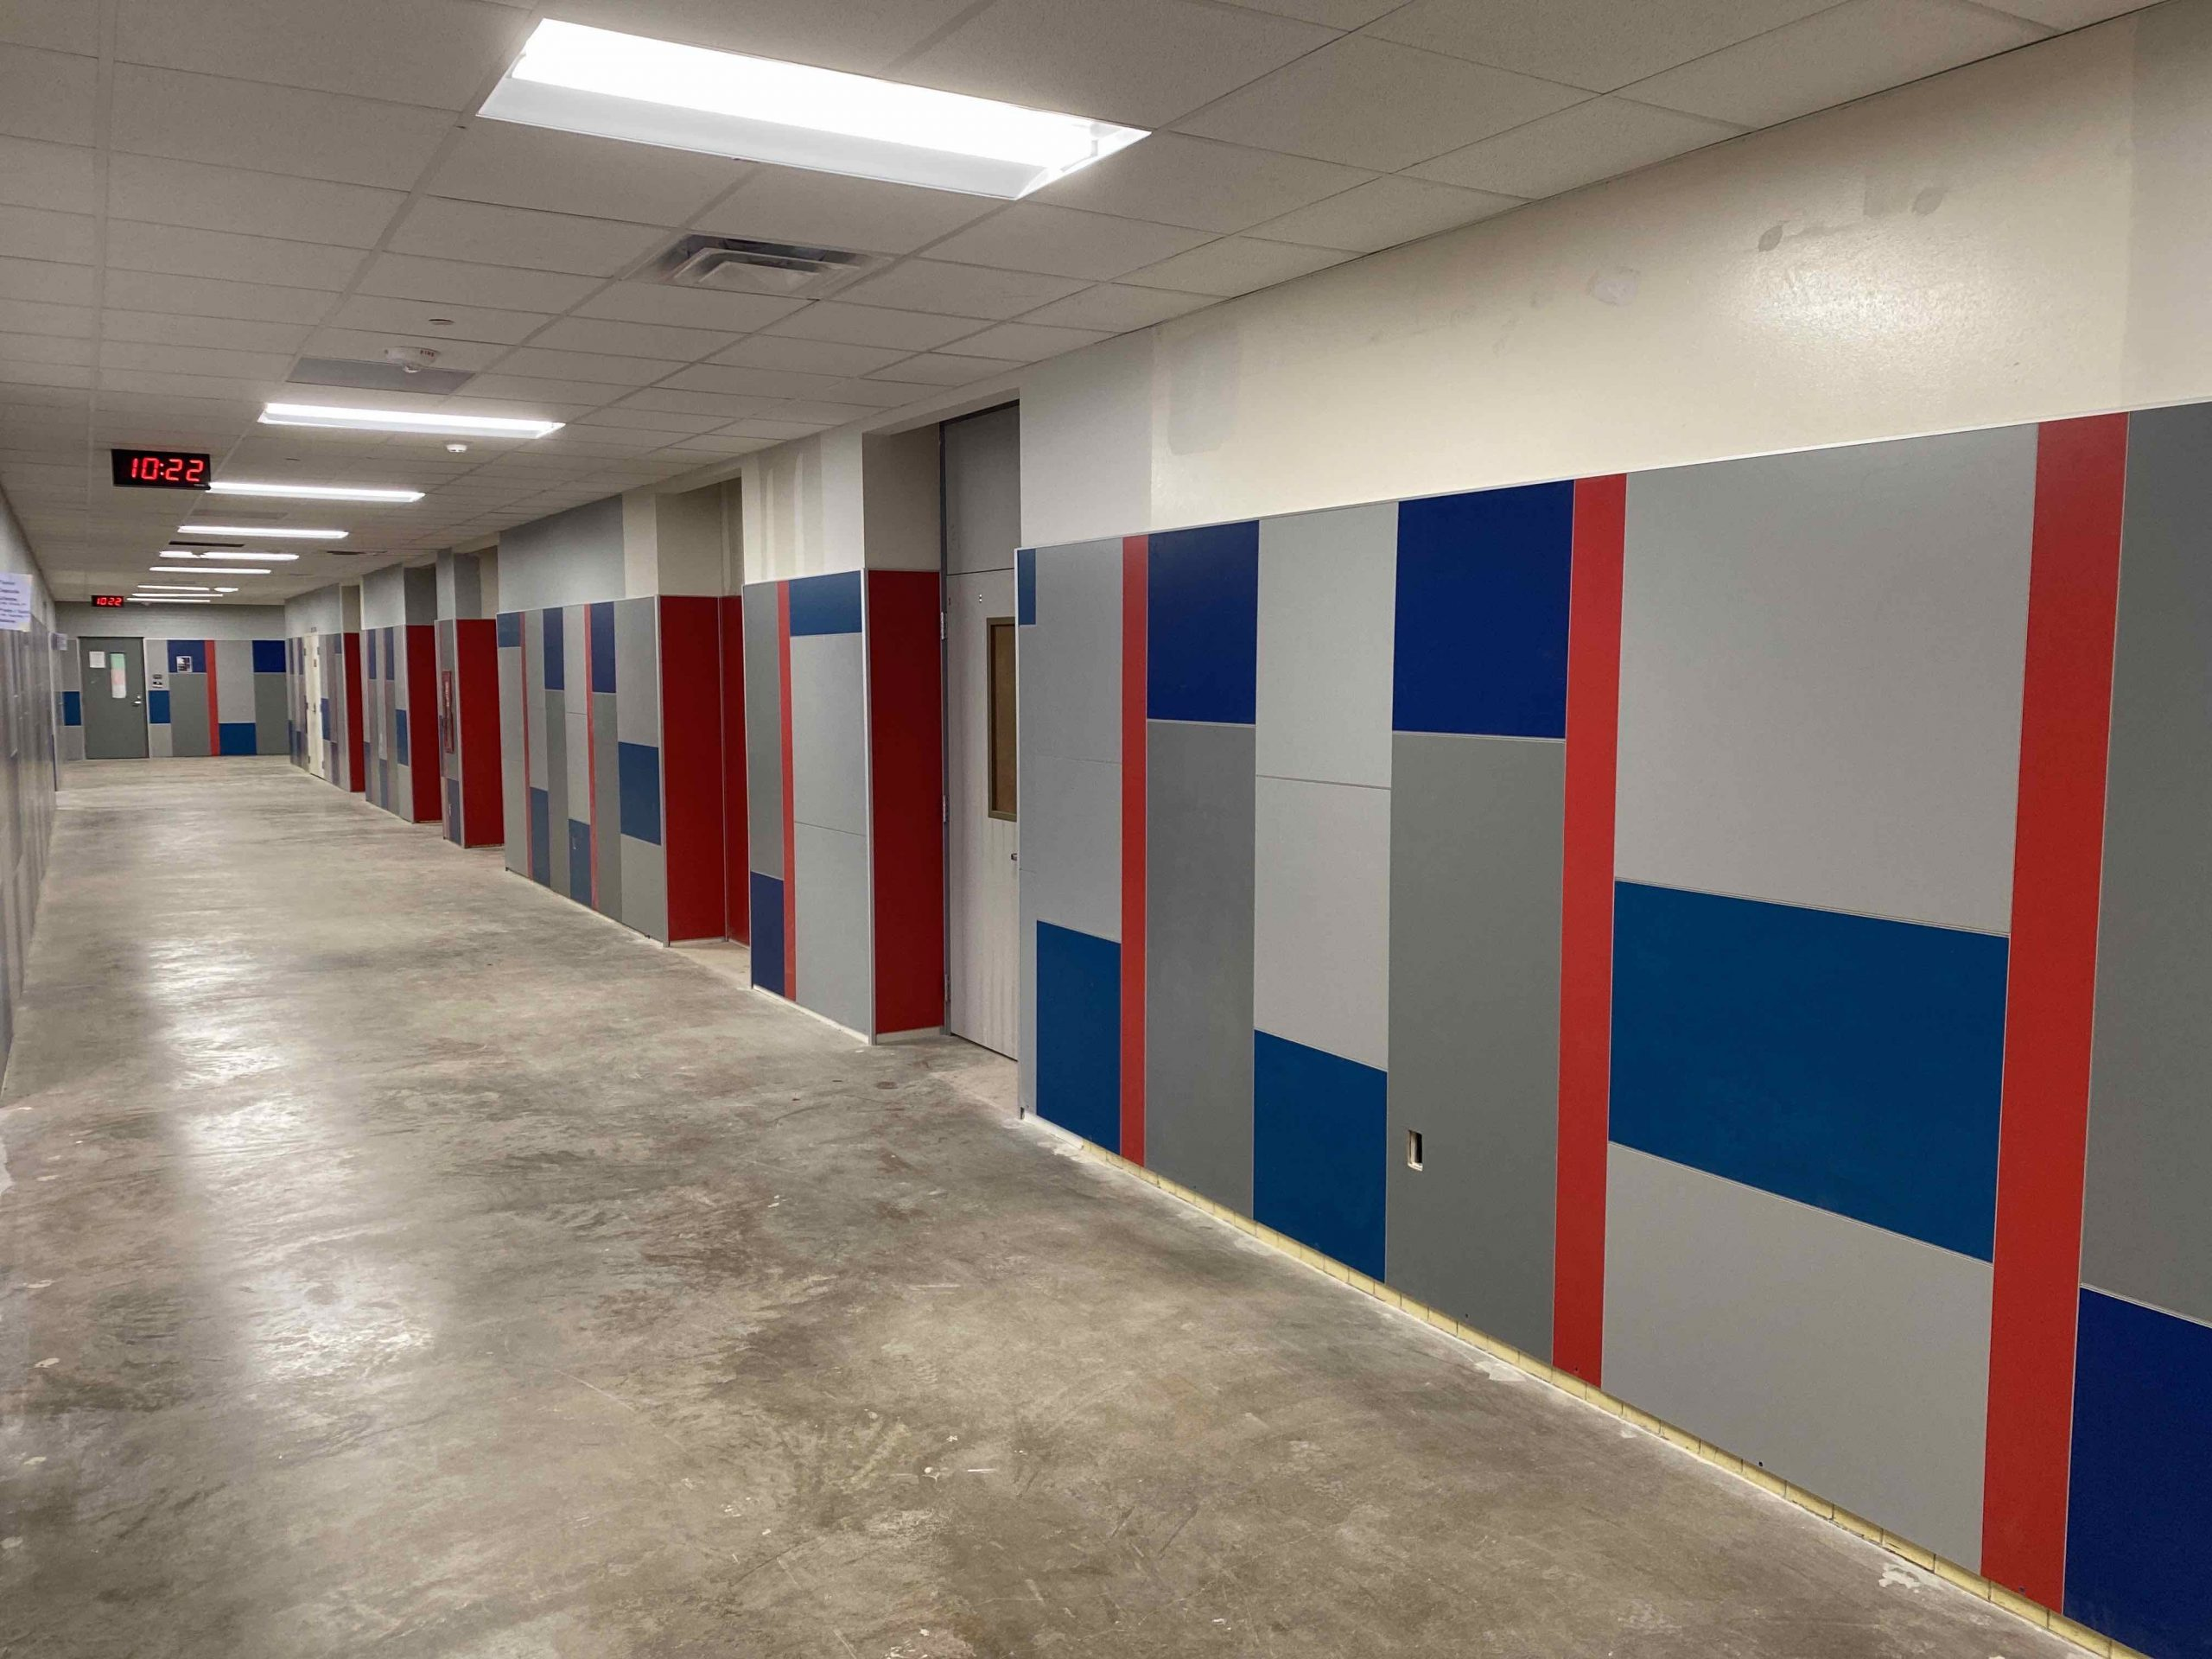 The Science Hallway is Looking Fresh! image 1